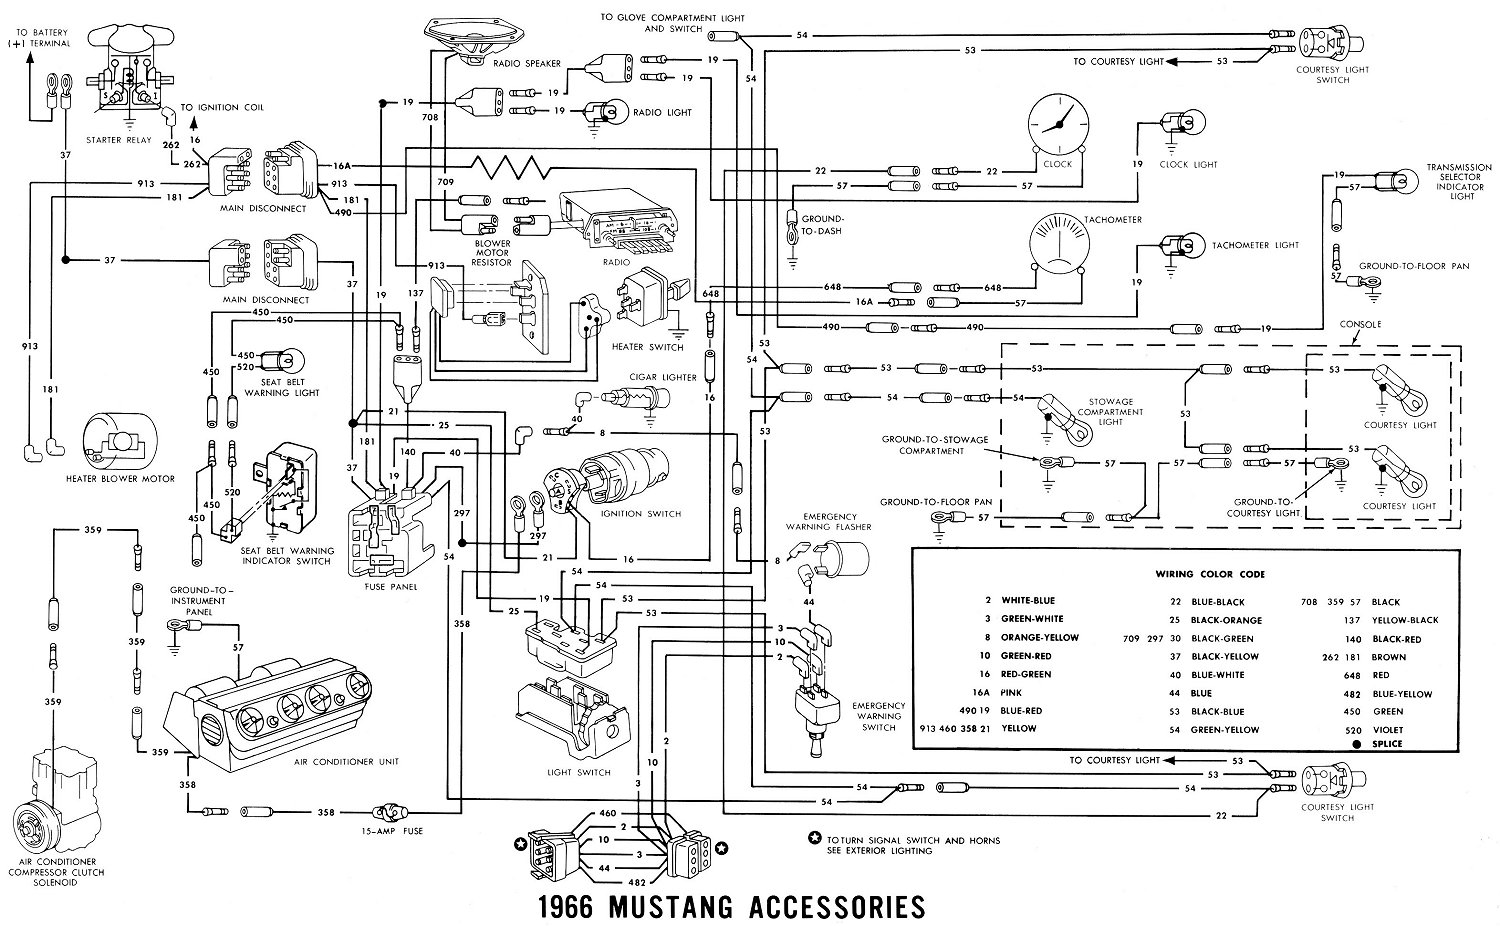 66acces1 mustang wiring diagrams mustang engine diagram \u2022 free wiring 1967 mustang wiring diagram at gsmportal.co